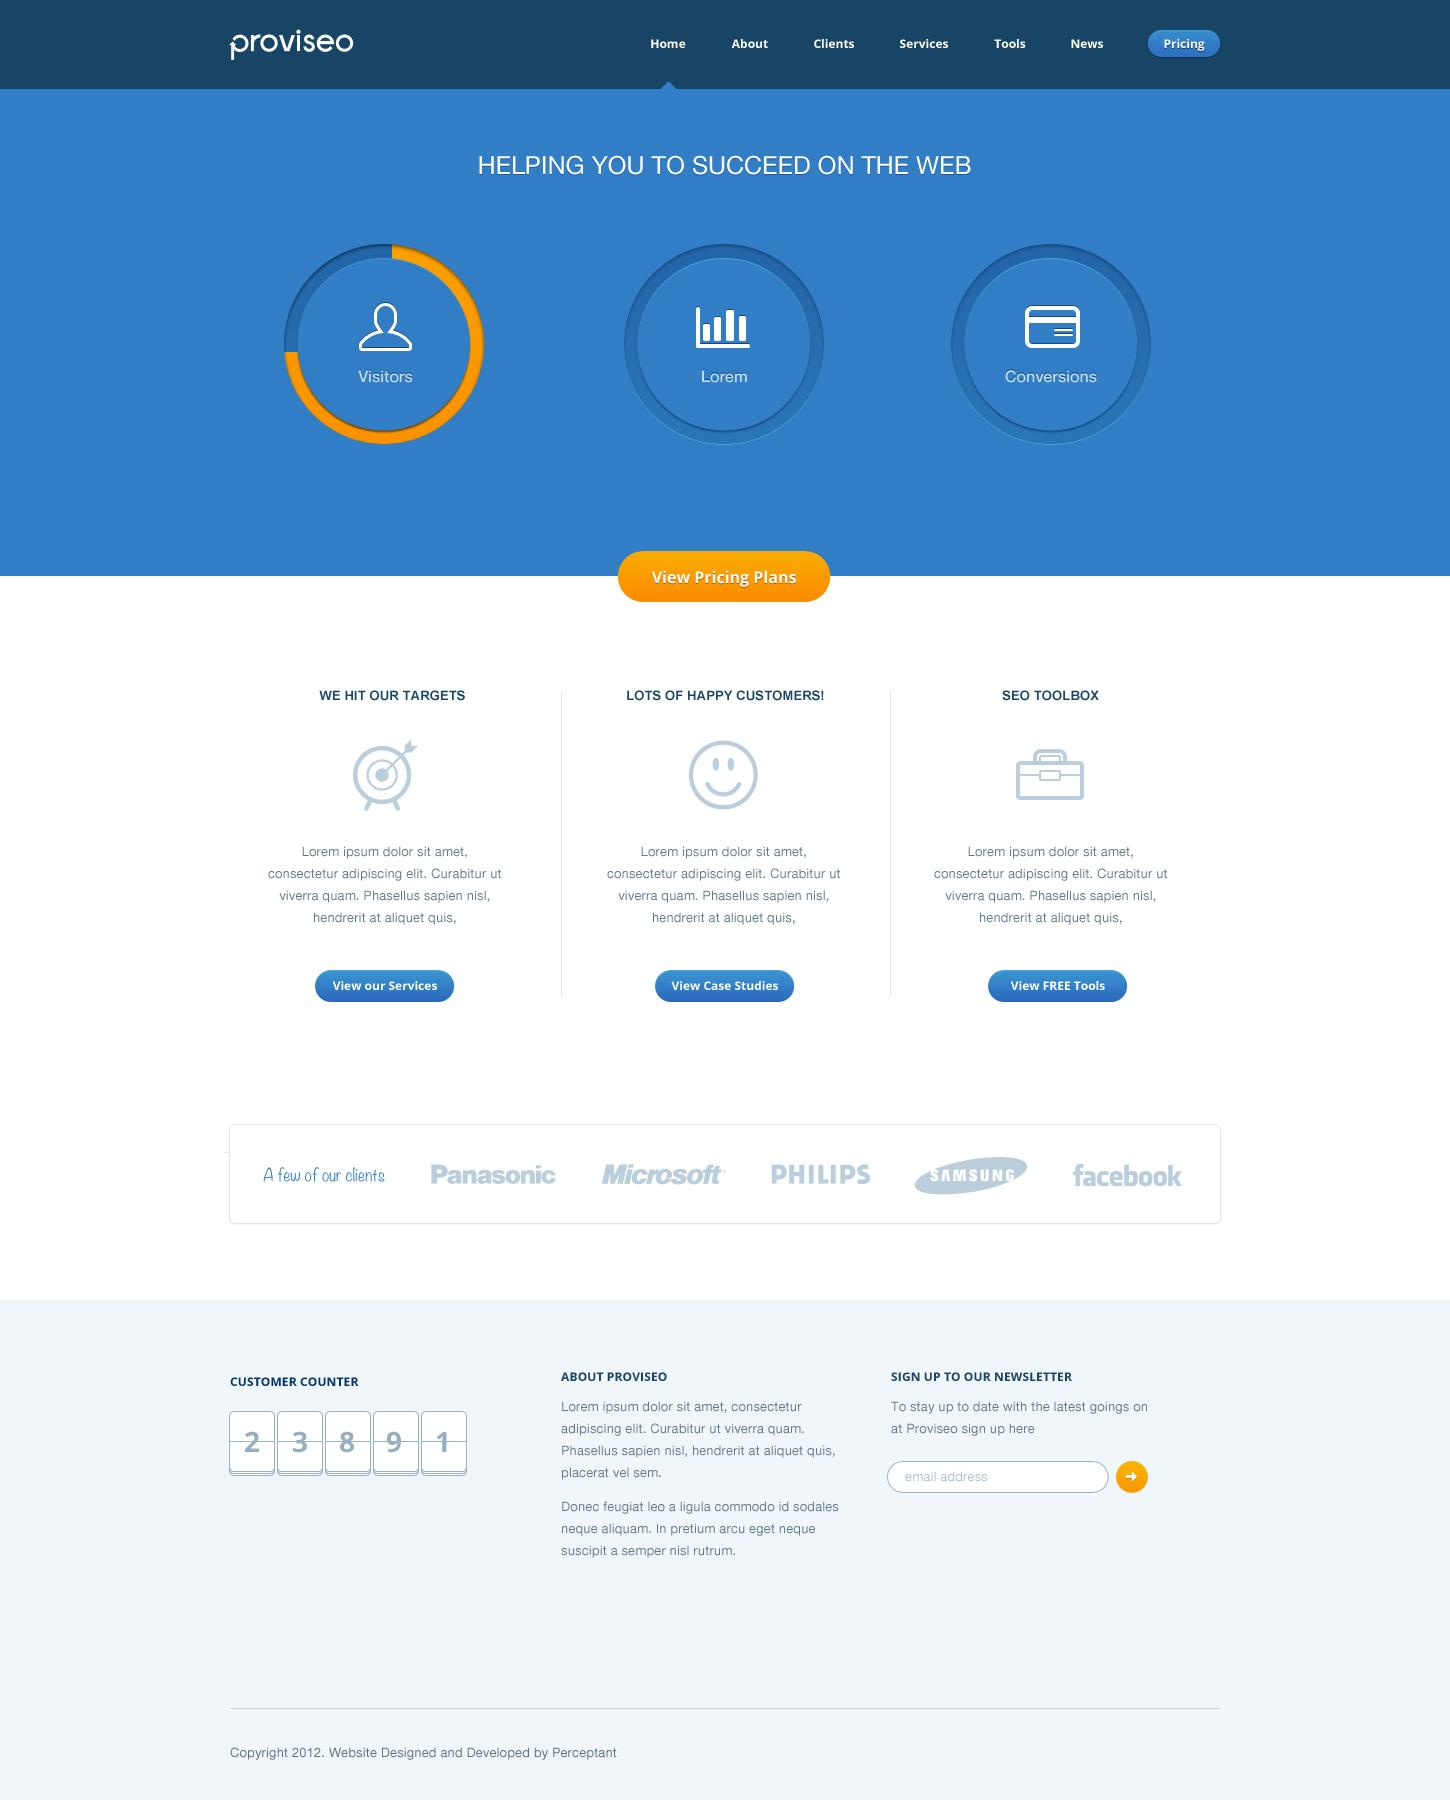 proviseo-homepage-concept.jpg by Joel Siddall